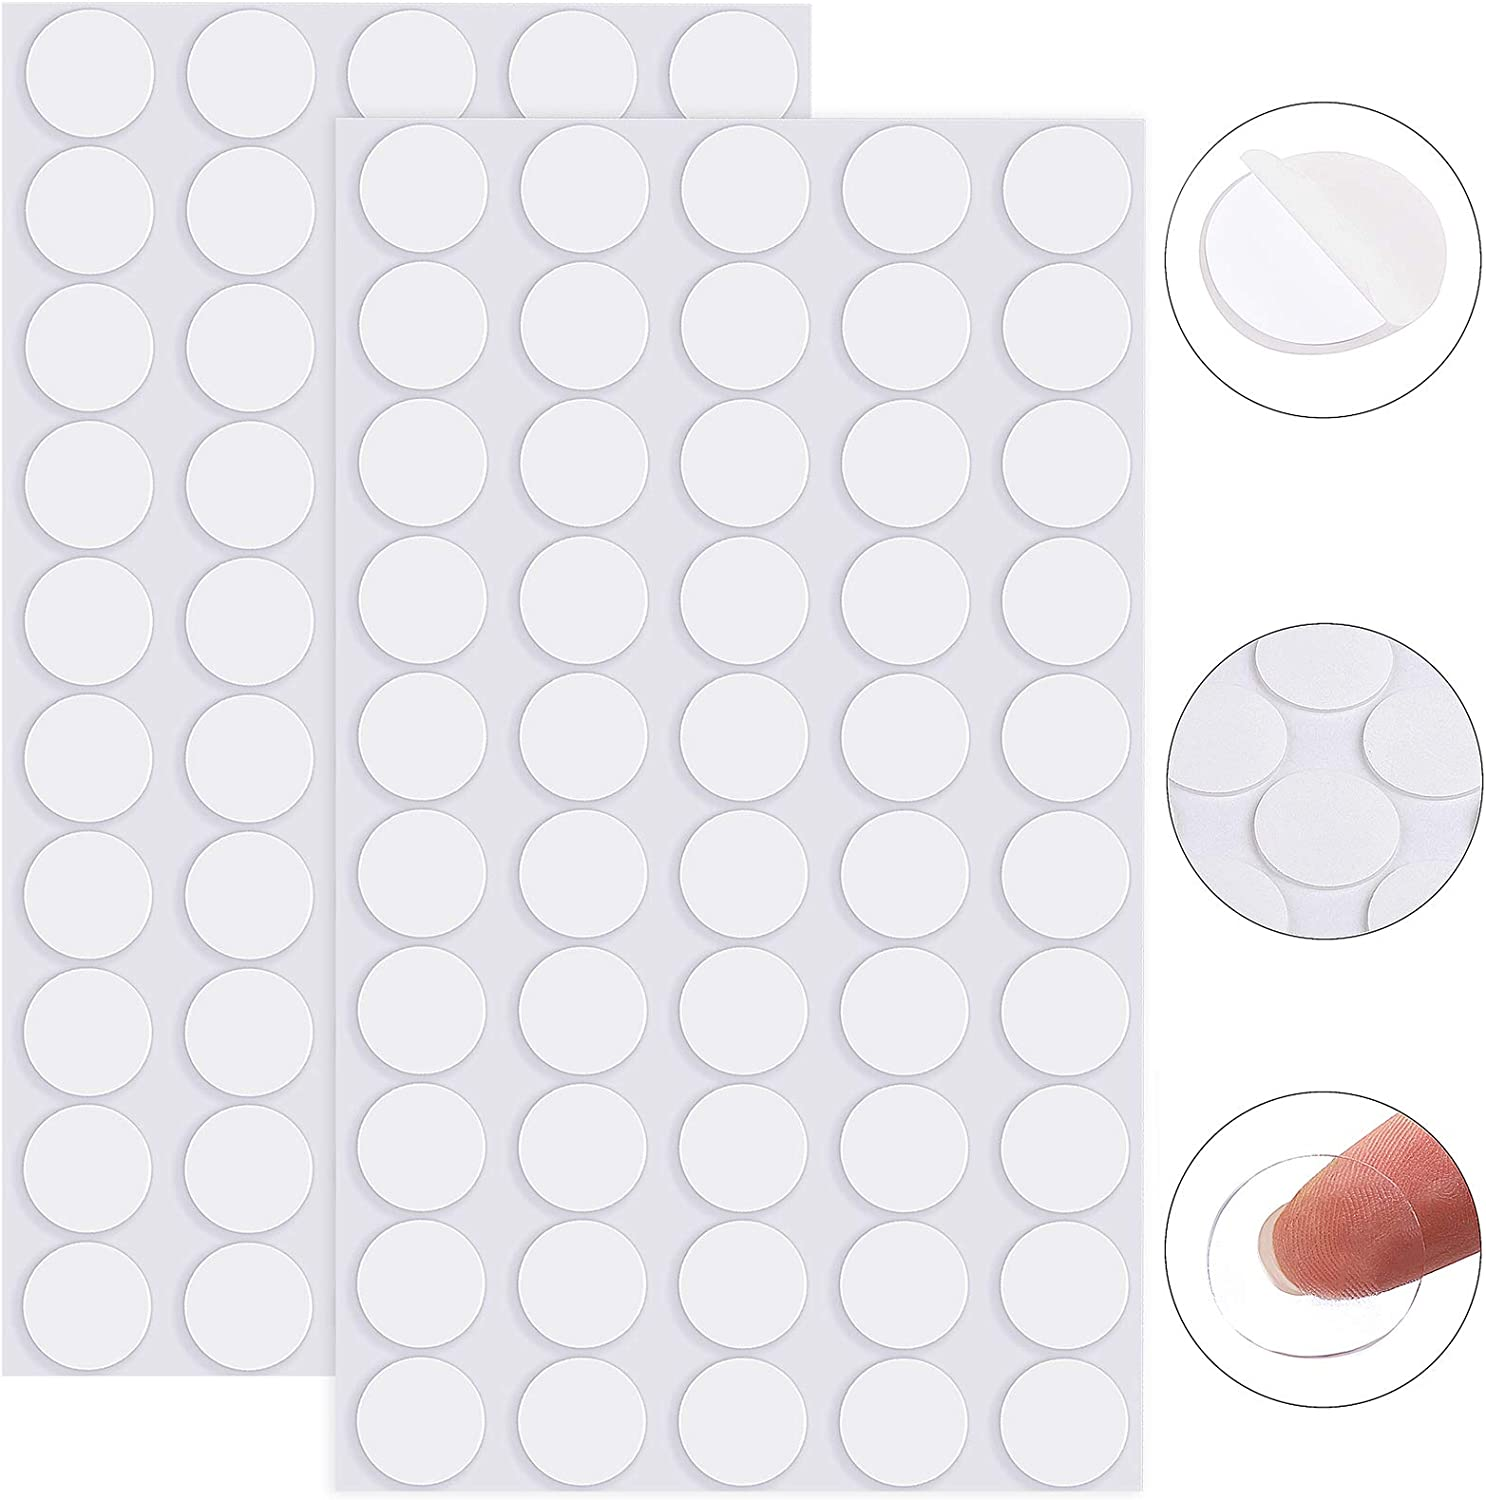 ADXCO 100 Pieces Removable Sticky Adhesive Putty Clear Sticky Putty Double-Sided Putty Round Nano Gel Transparent Putty for Christmas Wall, Metal, Glass, Diameter 25 mm